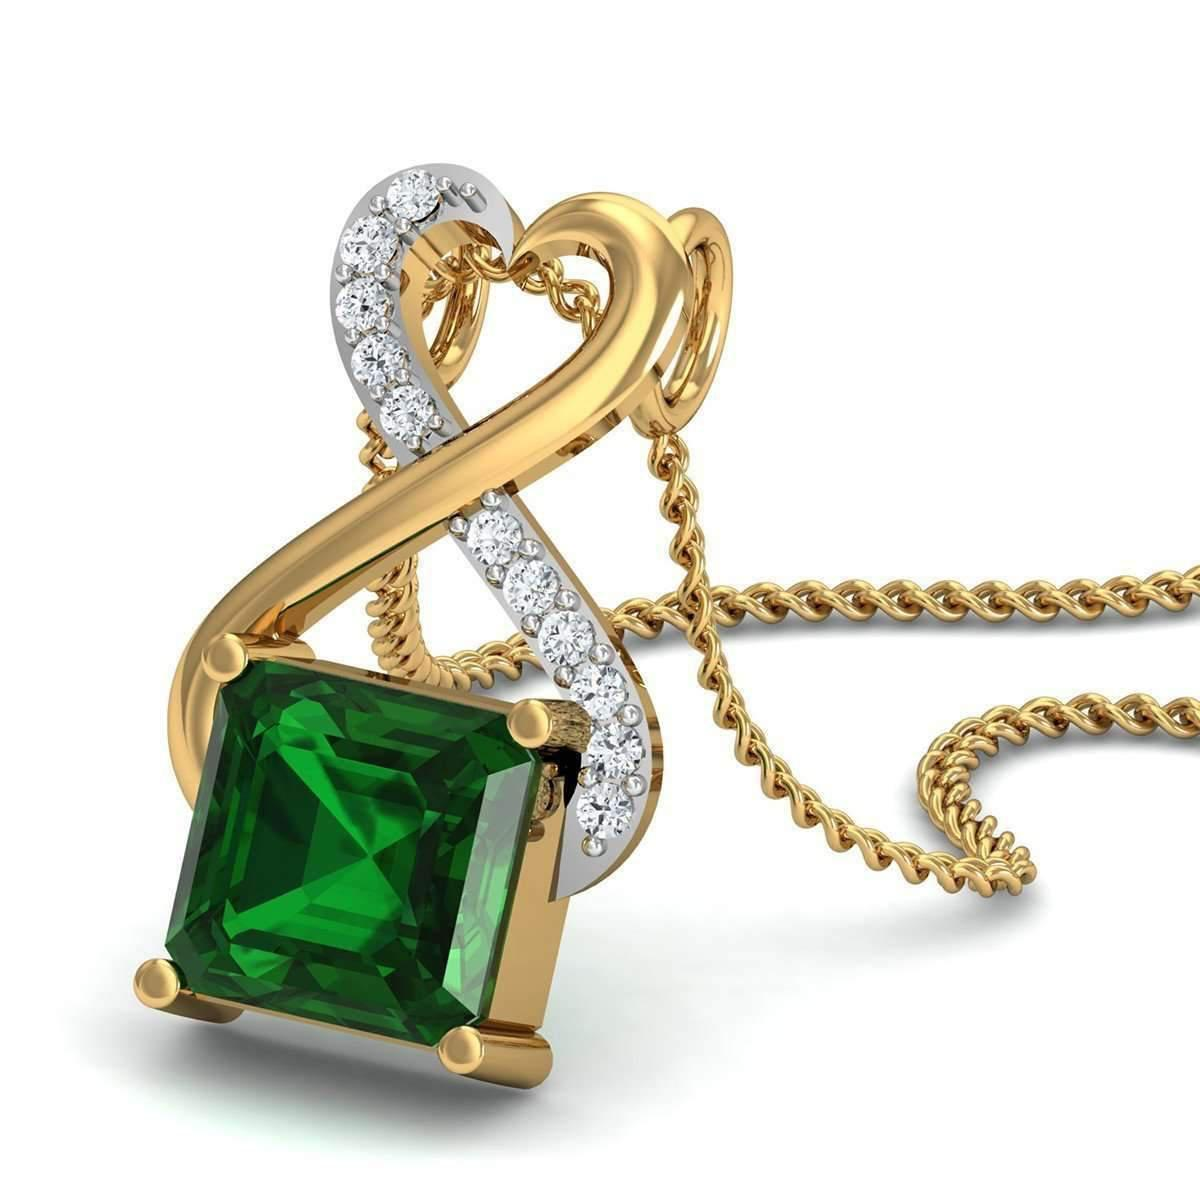 Diamoire Jewels Emerald Cut Nature Inspired Brazilian Emerald and Diamond Earrings in 14kt Yellow Gold 5x6fen